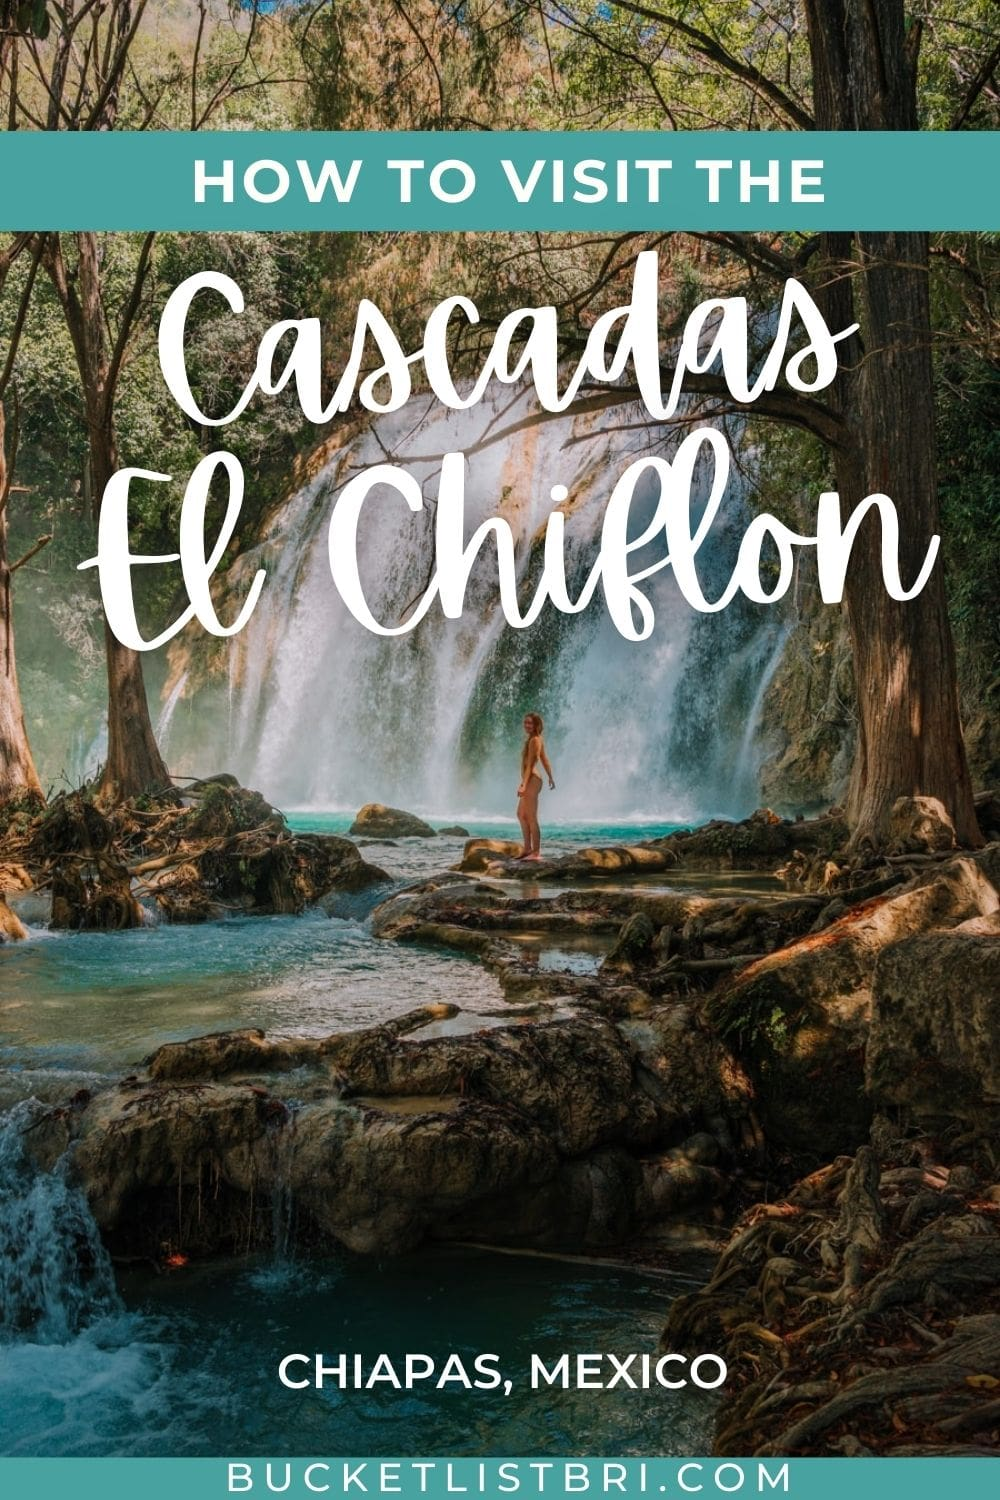 image of the Cascada Ala de Angel inside El Chiflon Waterfalls in Chiapas, Mexico with text overlay